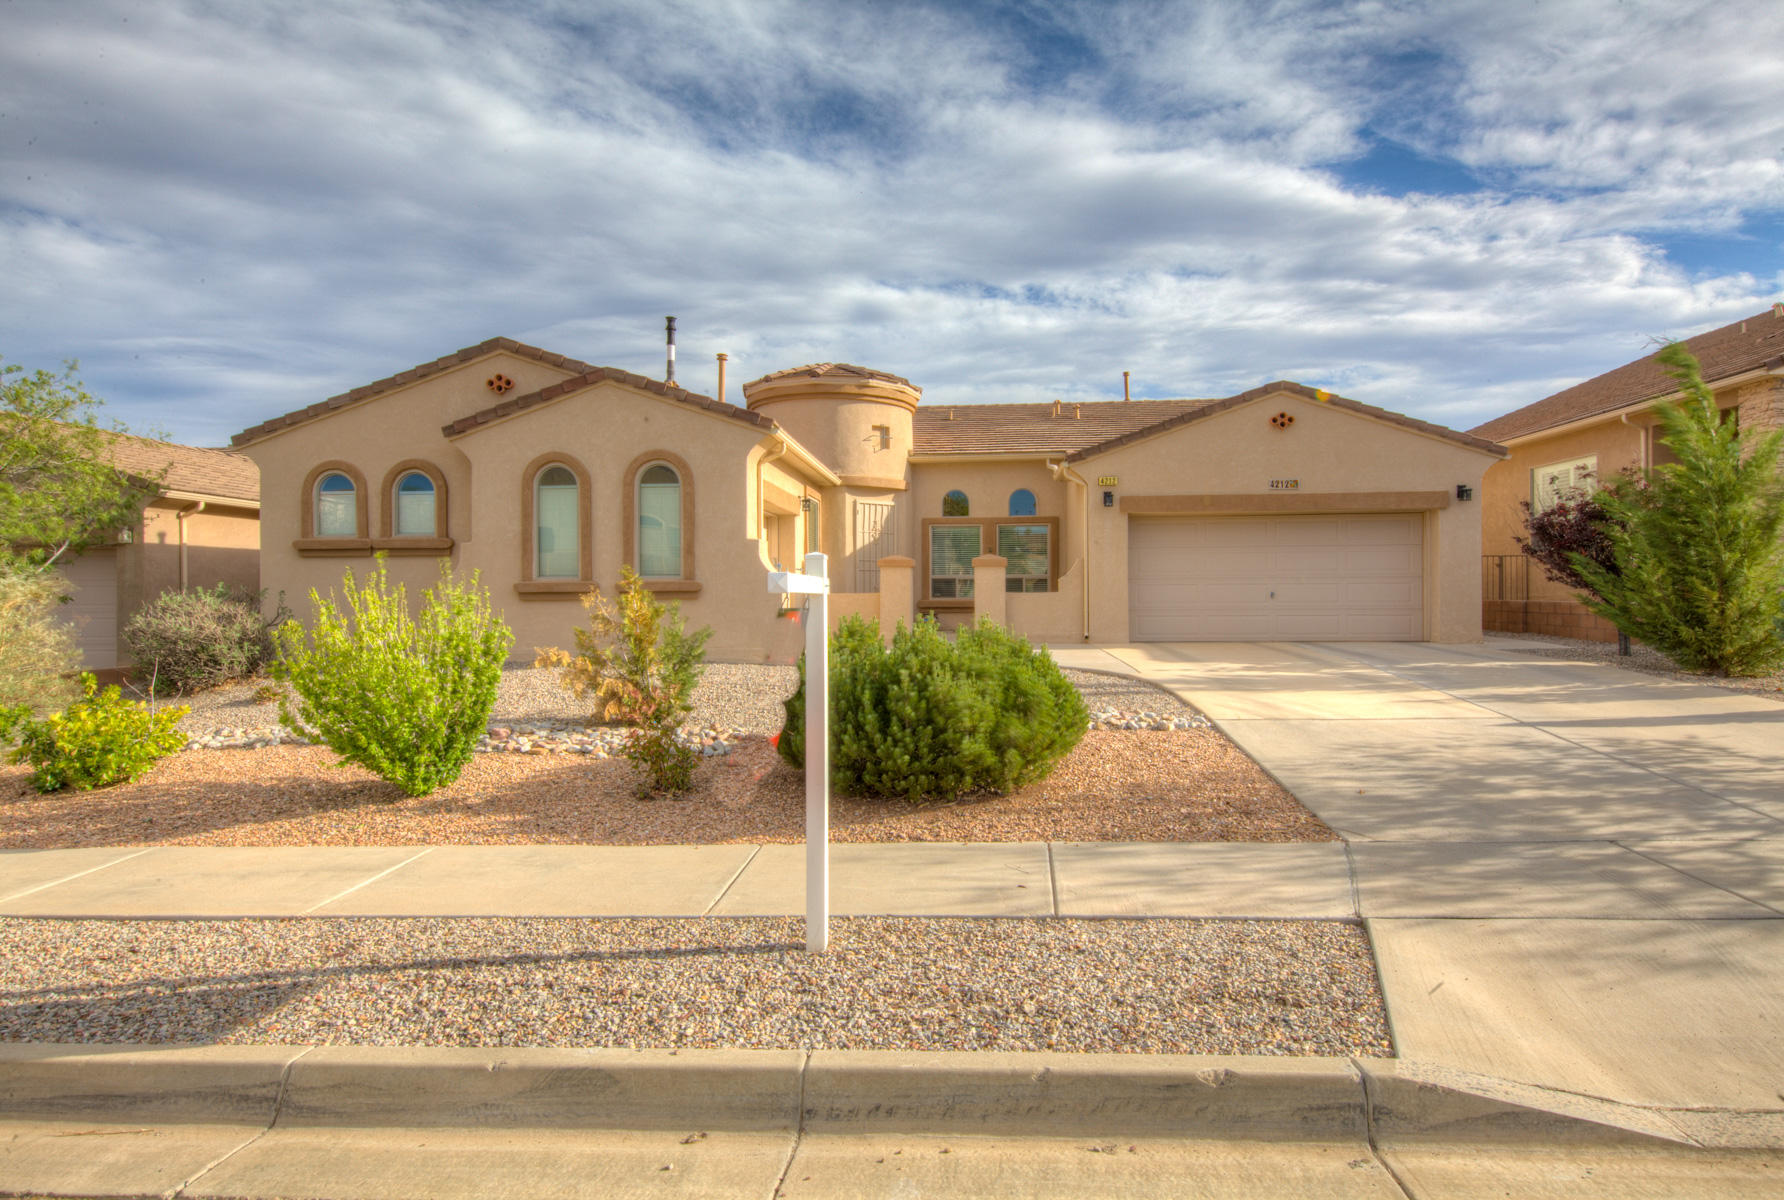 ******* Mountain views *******Come see this rare, 2744 square foot one story DR Horton home with .23 acre lot. Tons of extras. High ceilings * upgraded Ceramic Tile in kitchen, bathroom,* Stone counter tops * Stainless Steel Appliances *  * Insulated garage , windows, and 220 V electric *  Jetted master bathroom tub * Wrap around master bedroom closet * Formal entry way * Guest 1/2 bath * Open floor plan * Kitchen Island with breakfast bar * Fabulous back yard with trees and views covered patio area plus additional Gazebo area perfect for B-B-Q's. Make this a must see.